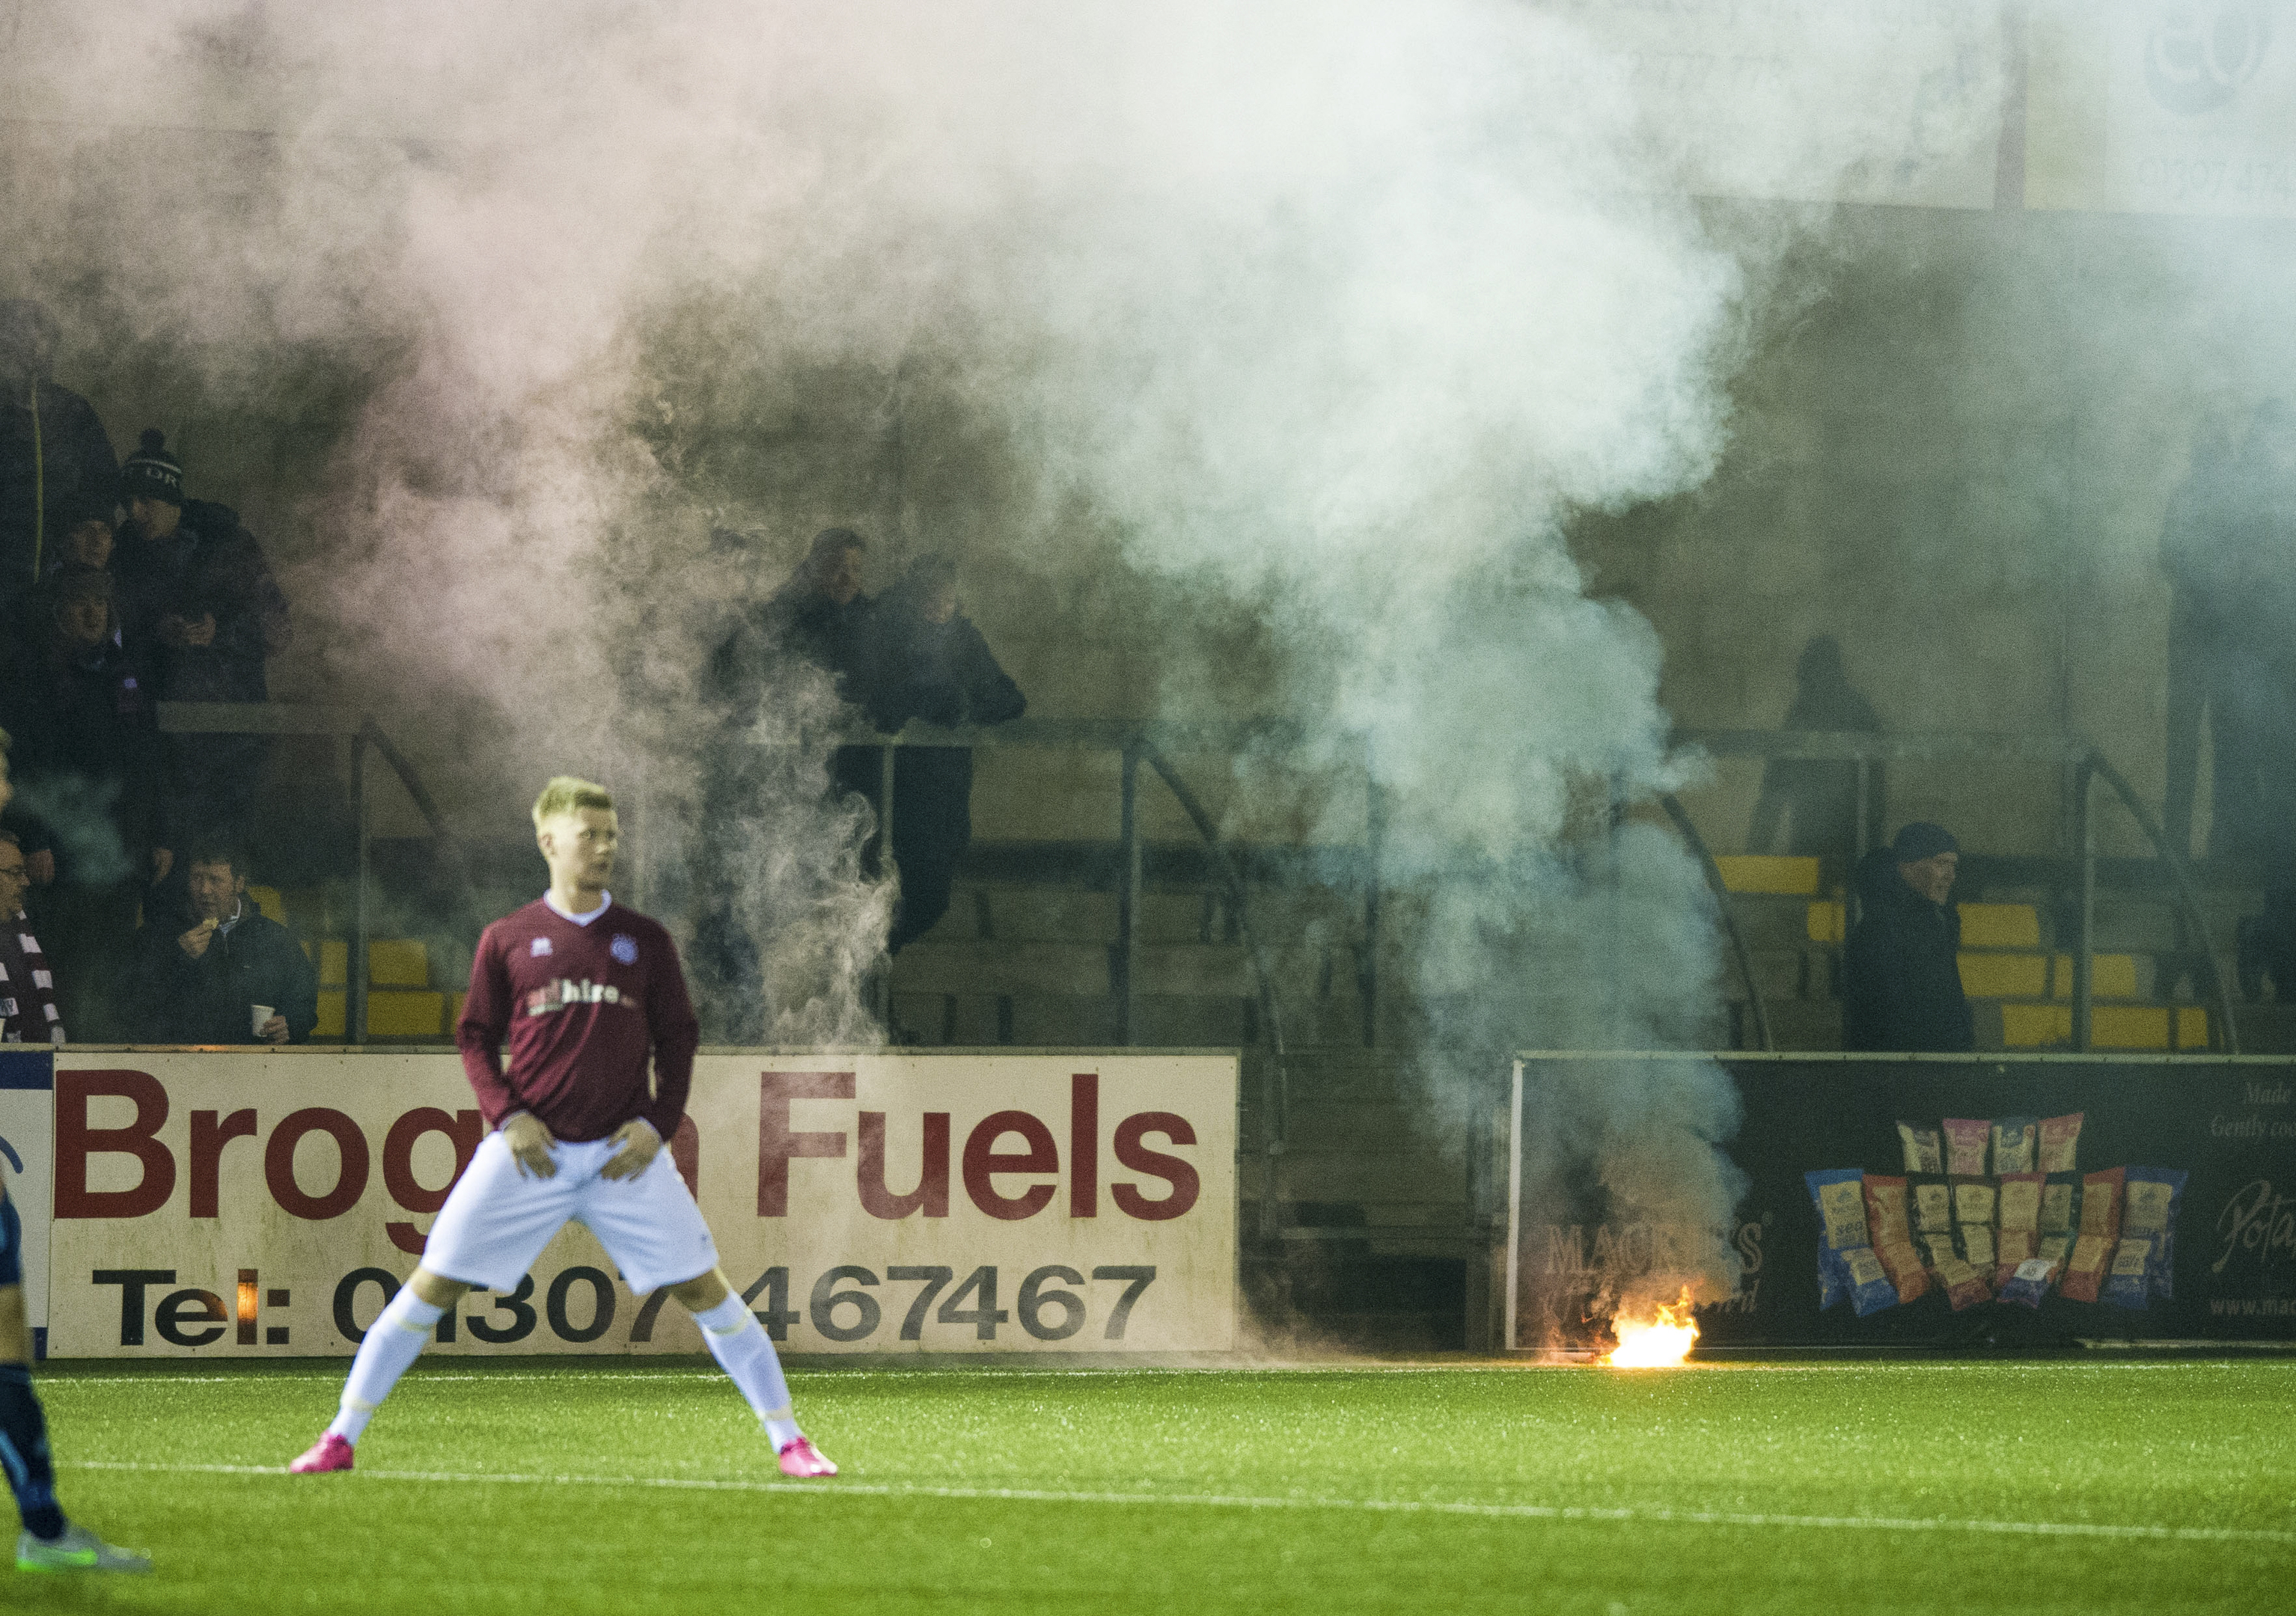 Flares are thrown onto the pitch at Forfar (Ross Parker / SNS Group)